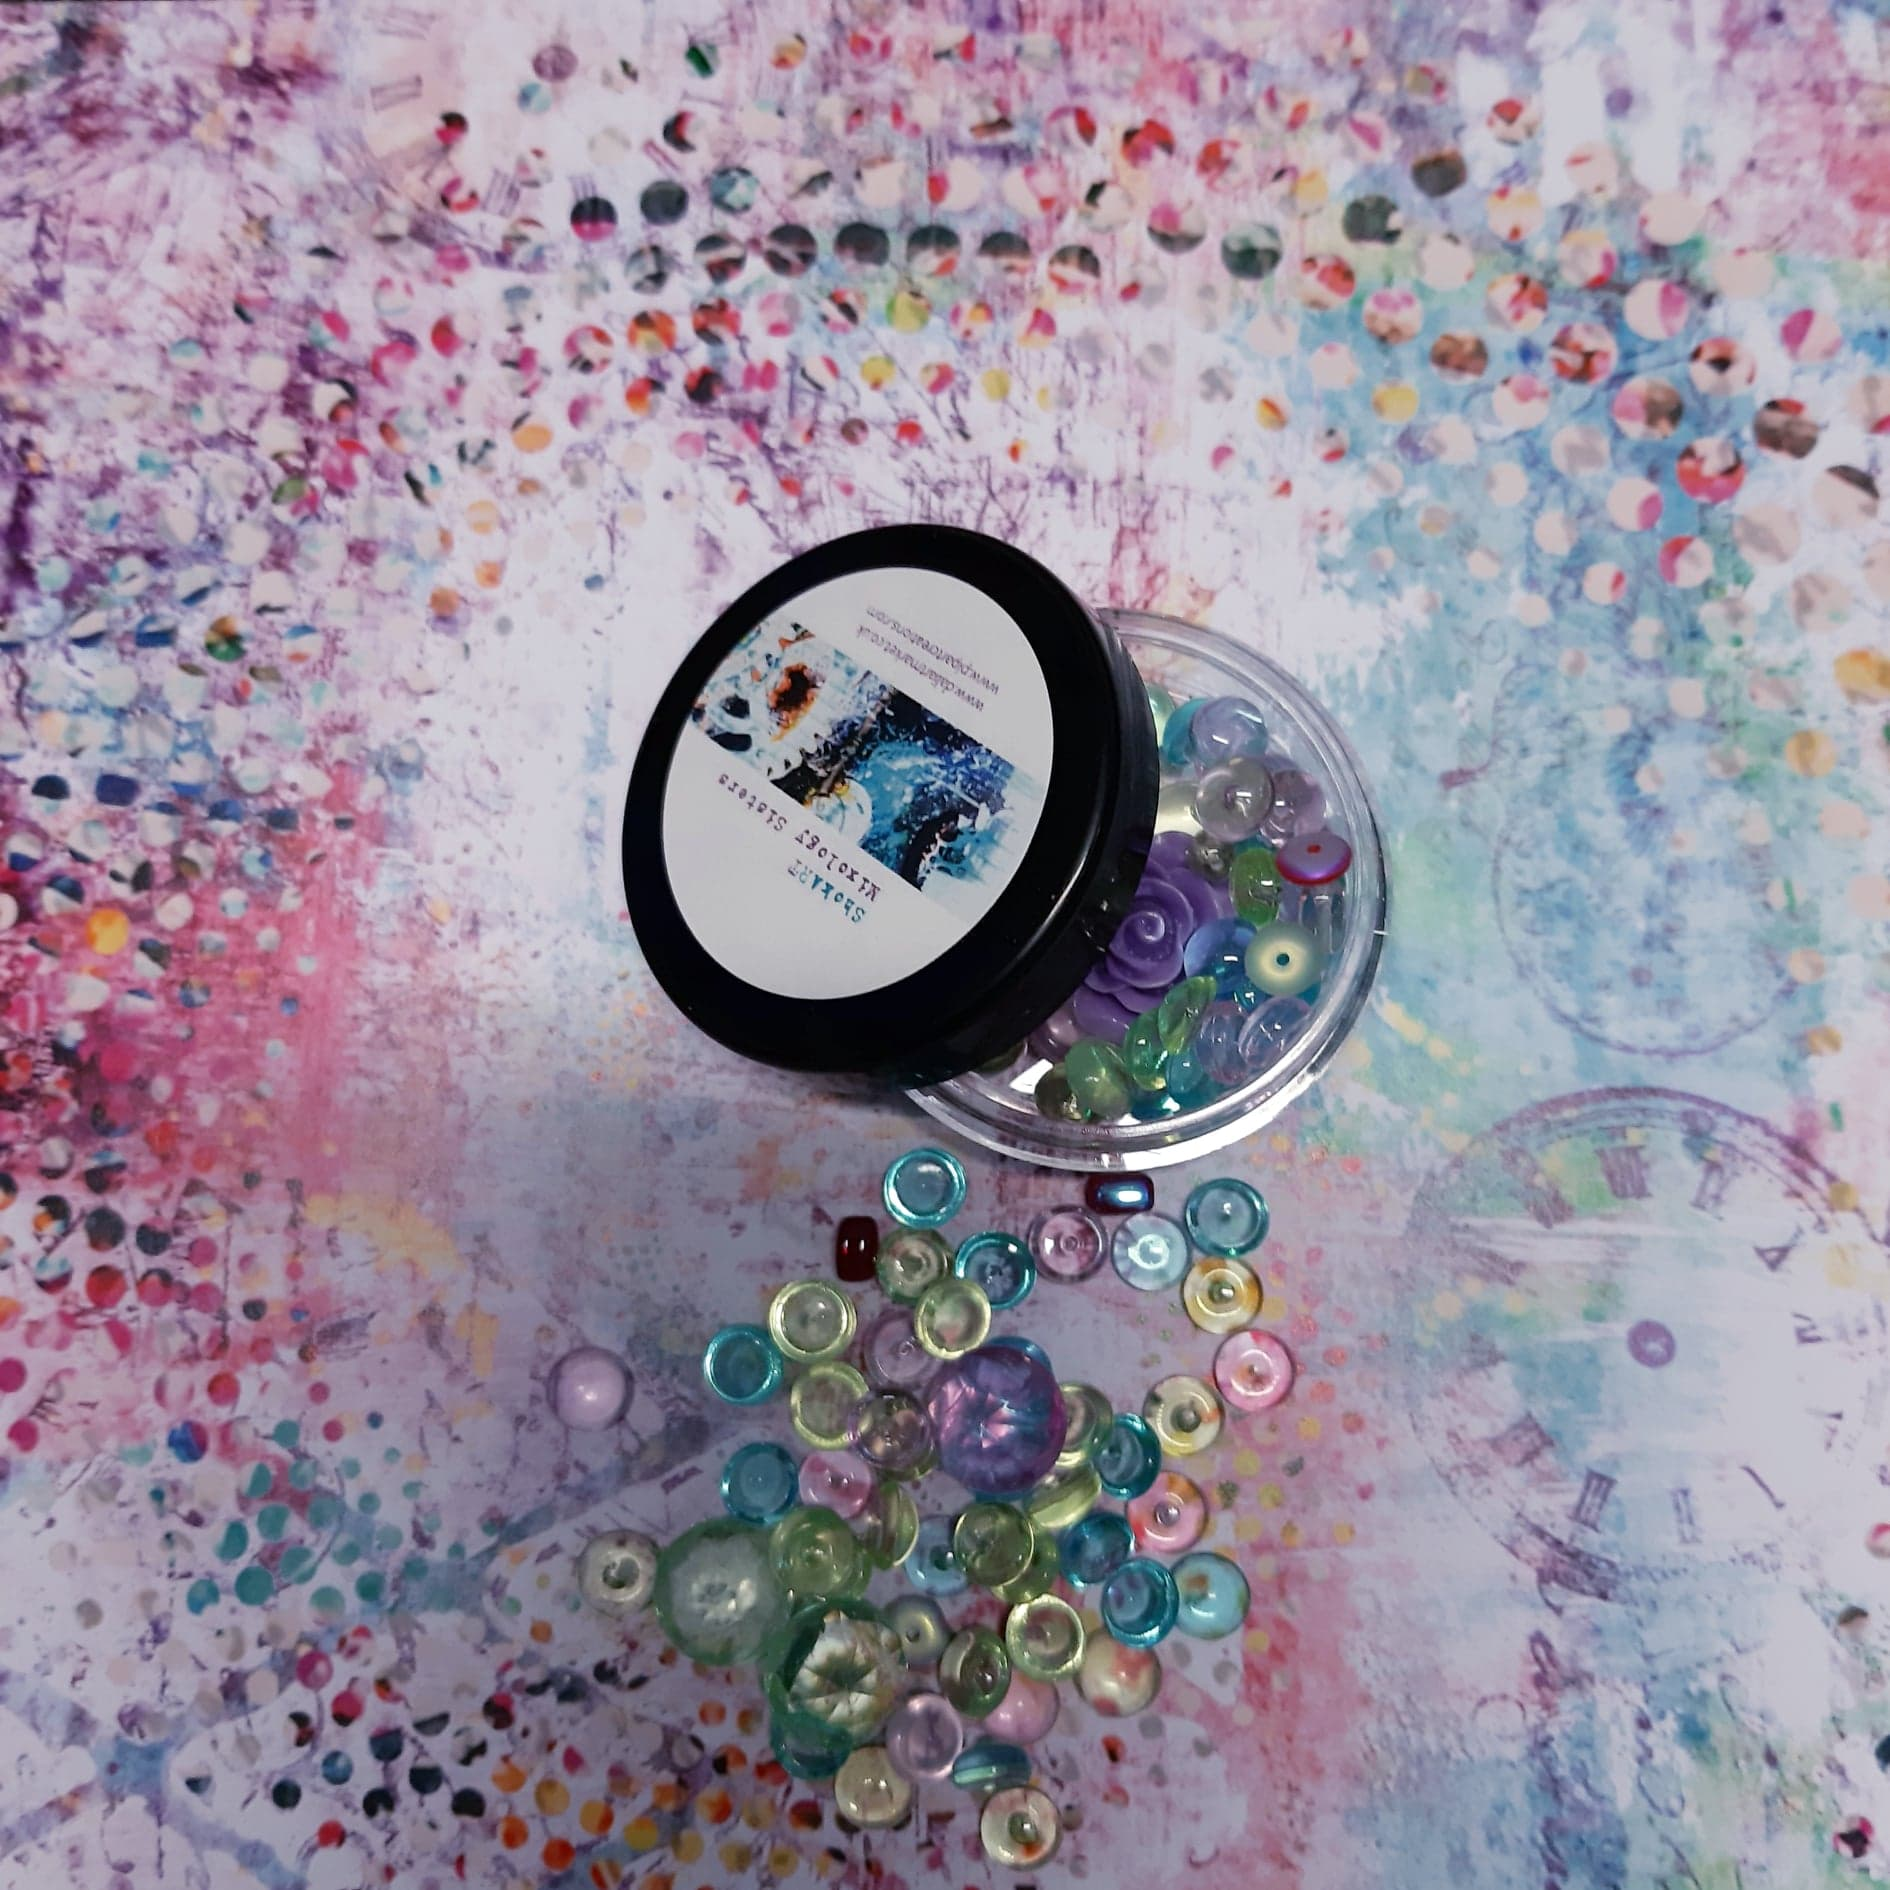 NEW Bird Song Dew Drops Collection, Art & Craft Kits by The Craft House